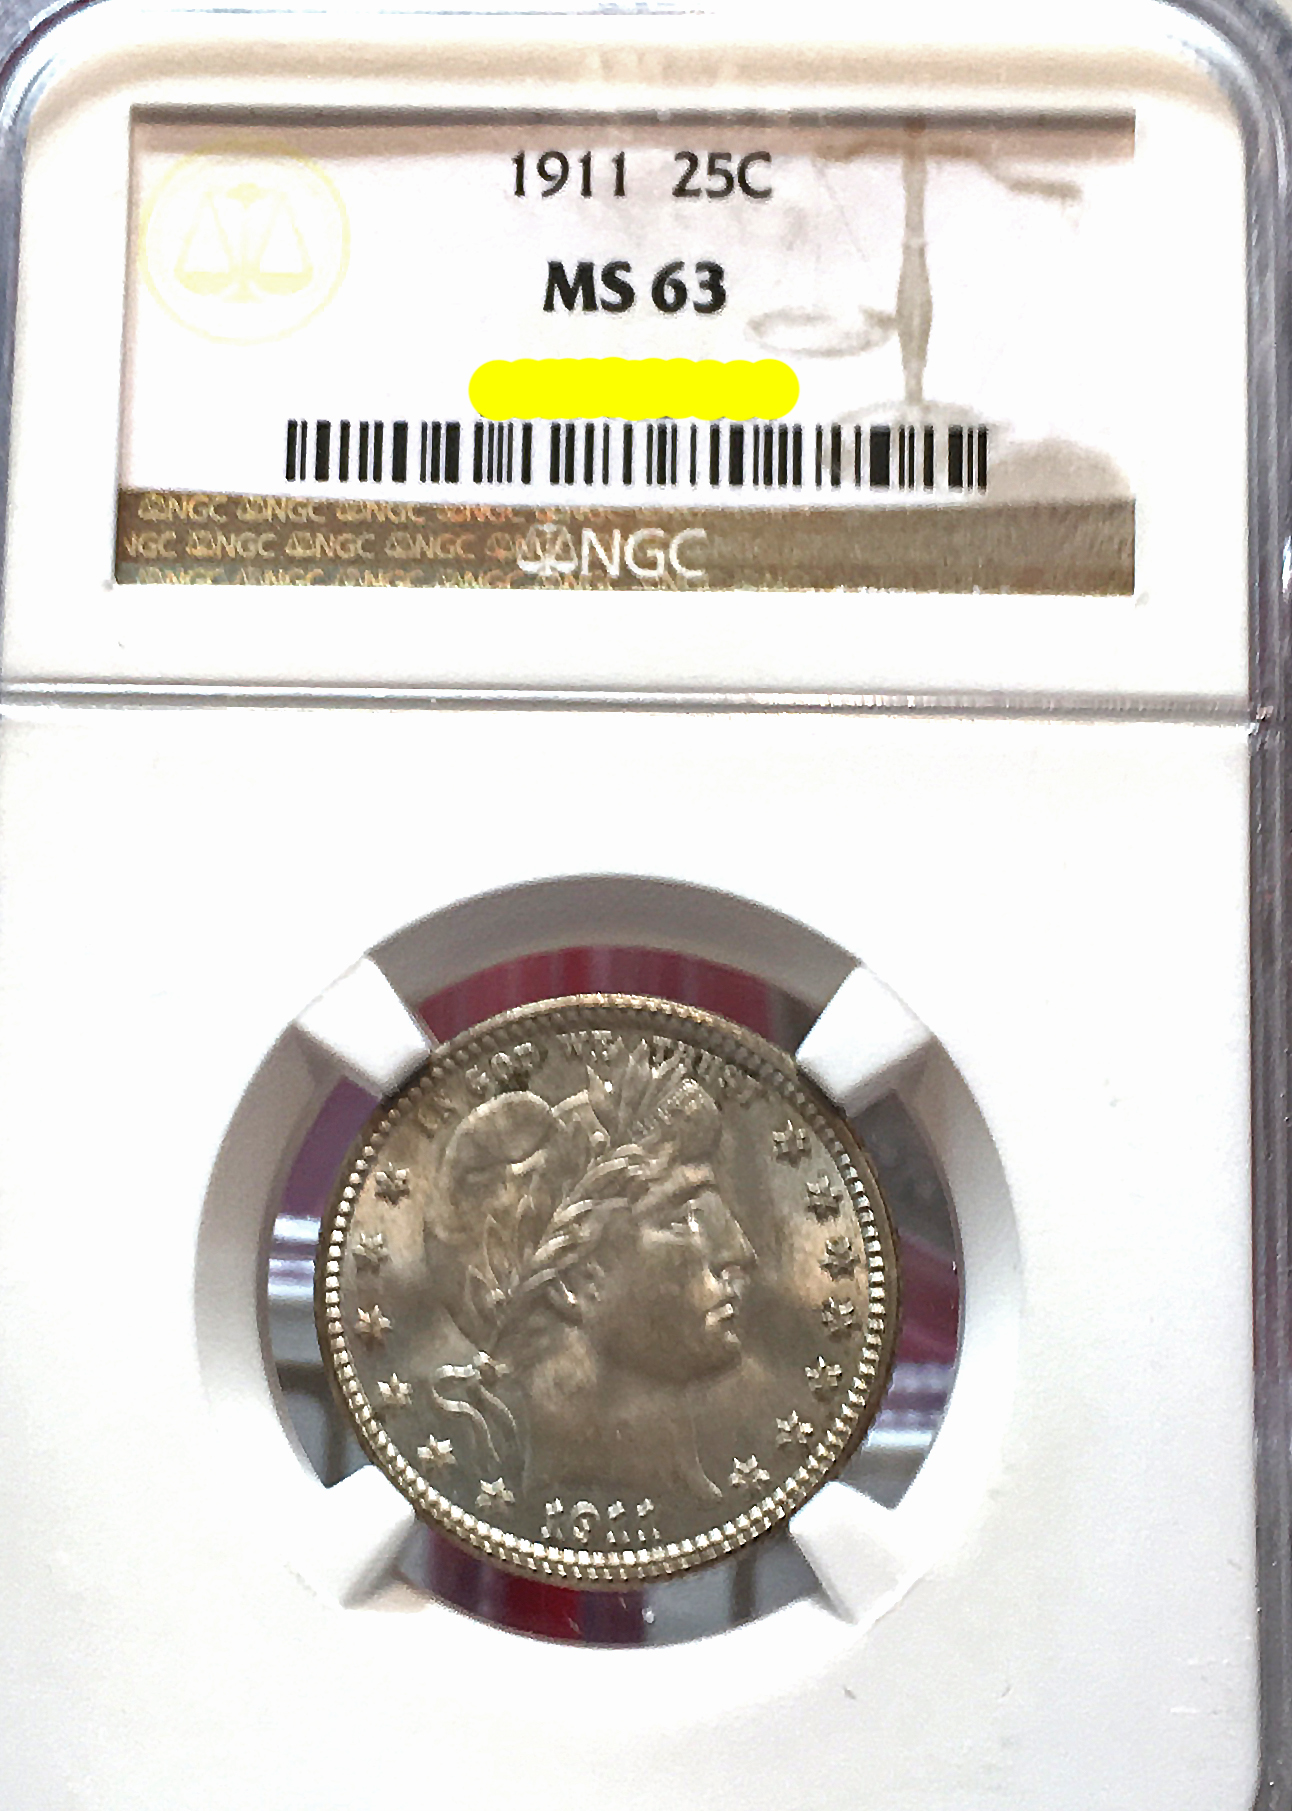 December 2016 Coin Show 1911 Barber Quarter MS-63 NGC